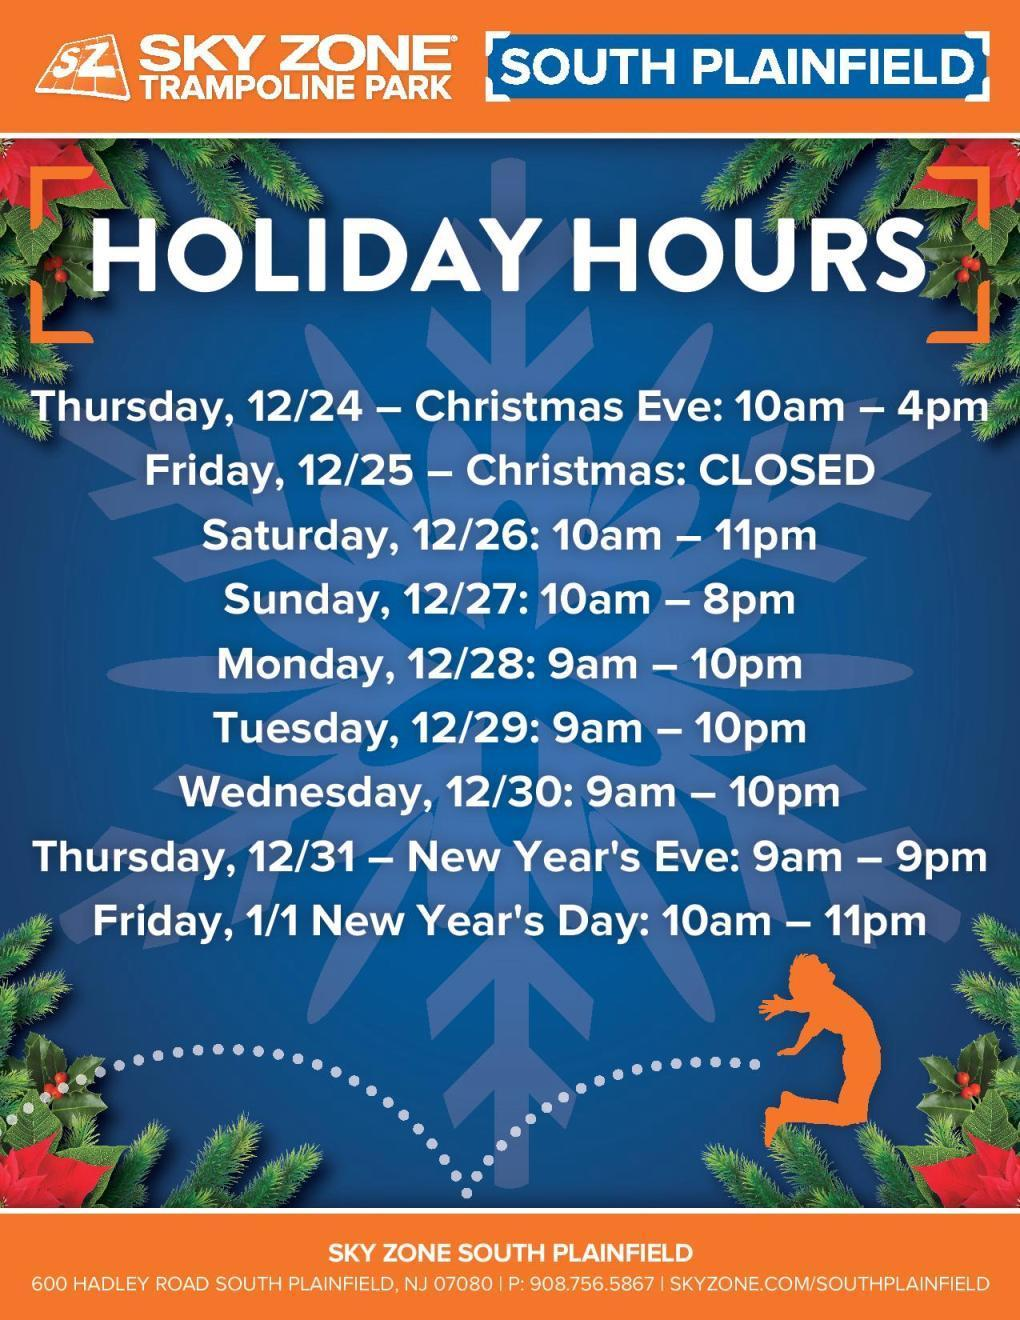 9b17472e4fabfd1255c5_Holiday_Hours_Flyer_V3_SPF__1_-page-001.jpg